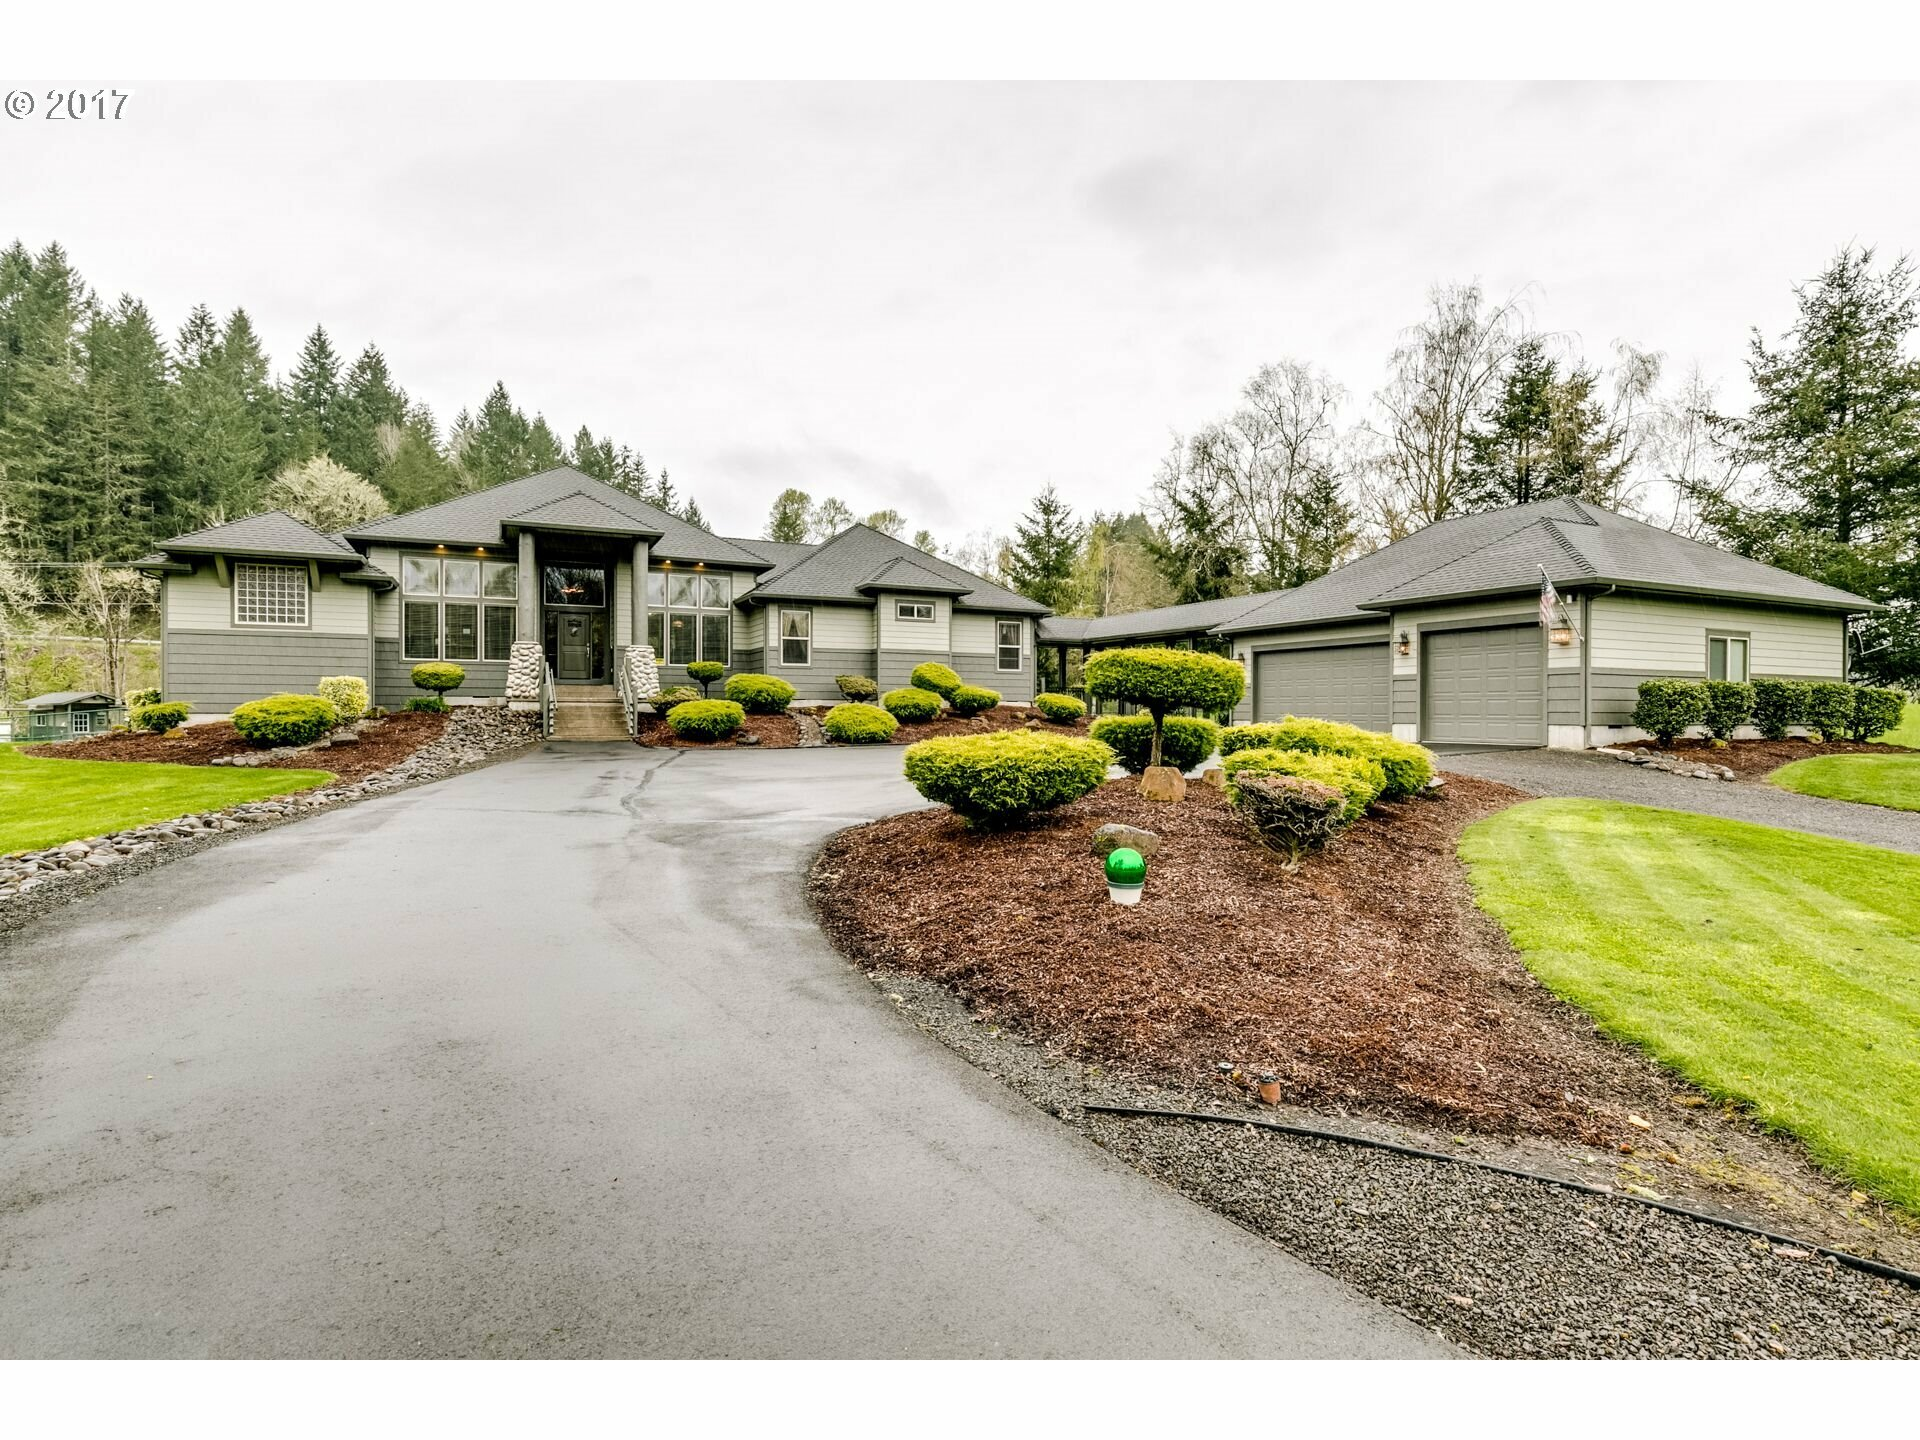 38541 Kickbusch Ln, Springfield, OR - USA (photo 1)